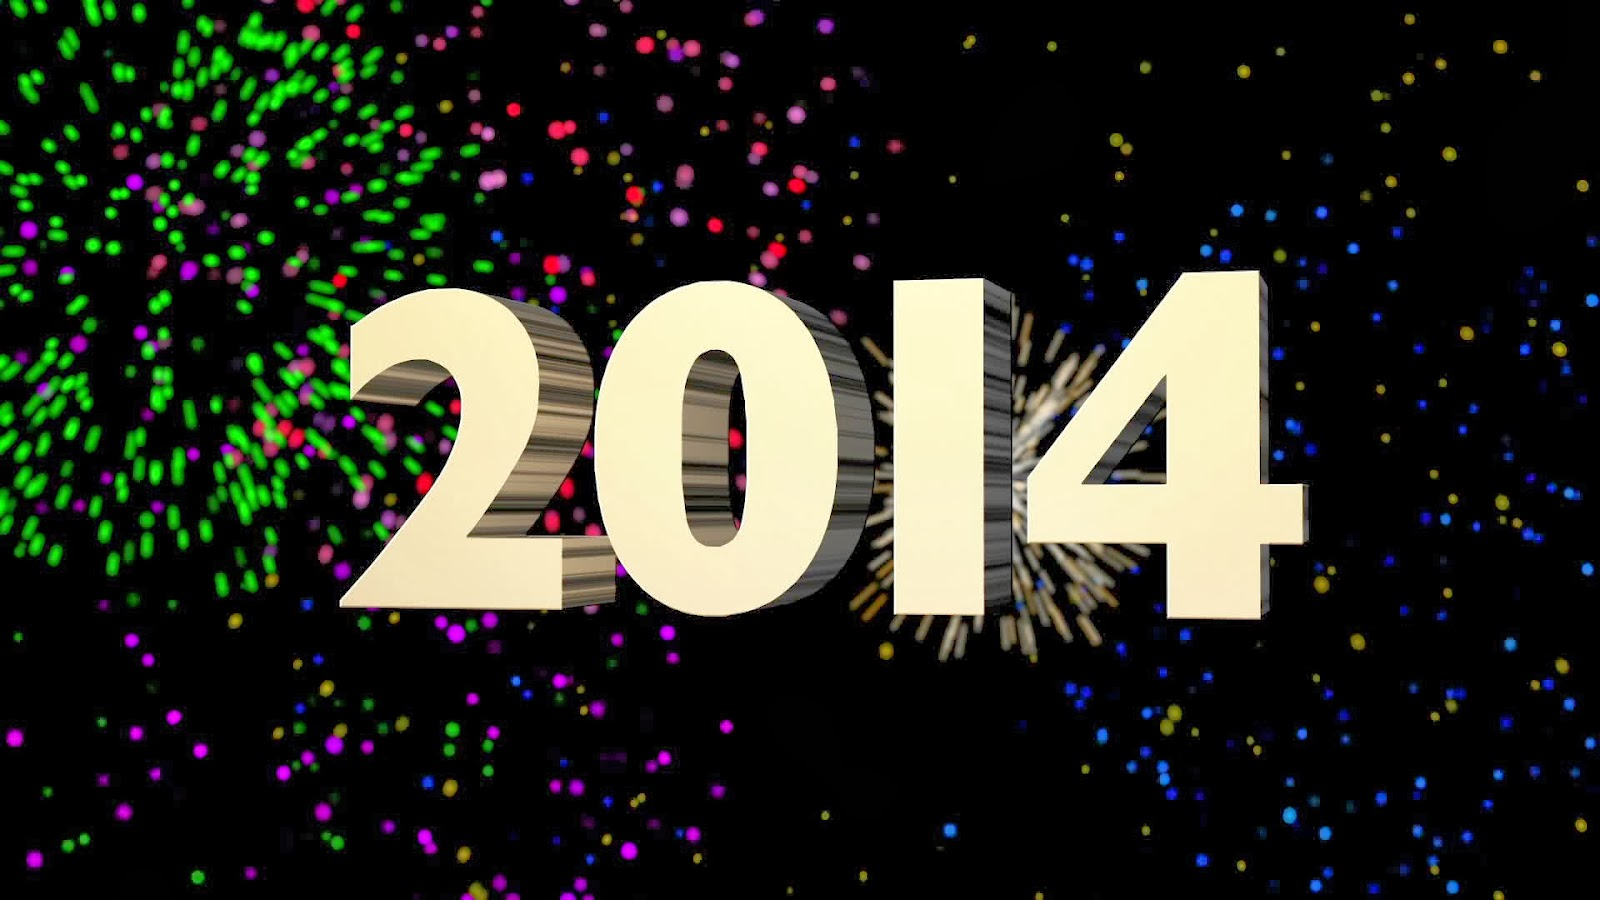 2014 wallpapers hd wallpapers happy new year 2014 wallpaper hd free voltagebd Choice Image